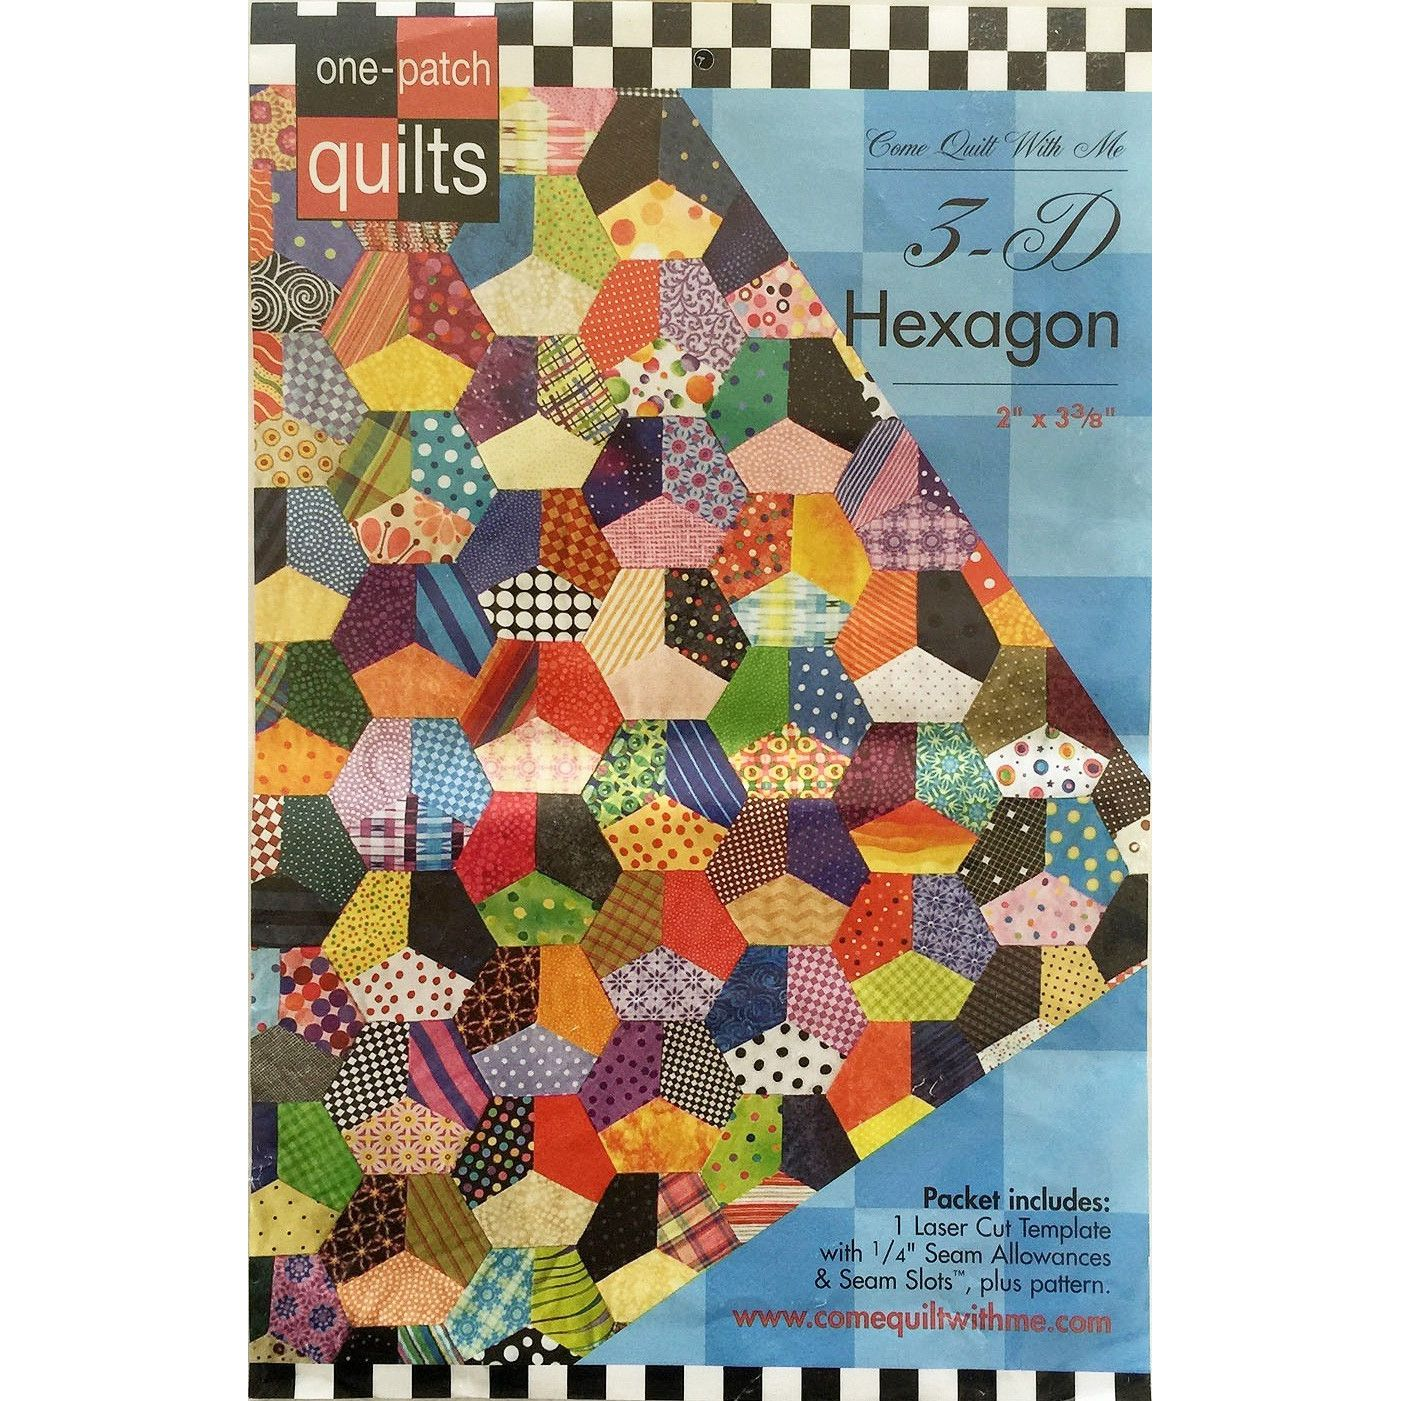 3-D Hexagon One Patch Pattern & Template by Come Quilt with Me : patch it to me quilt - Adamdwight.com